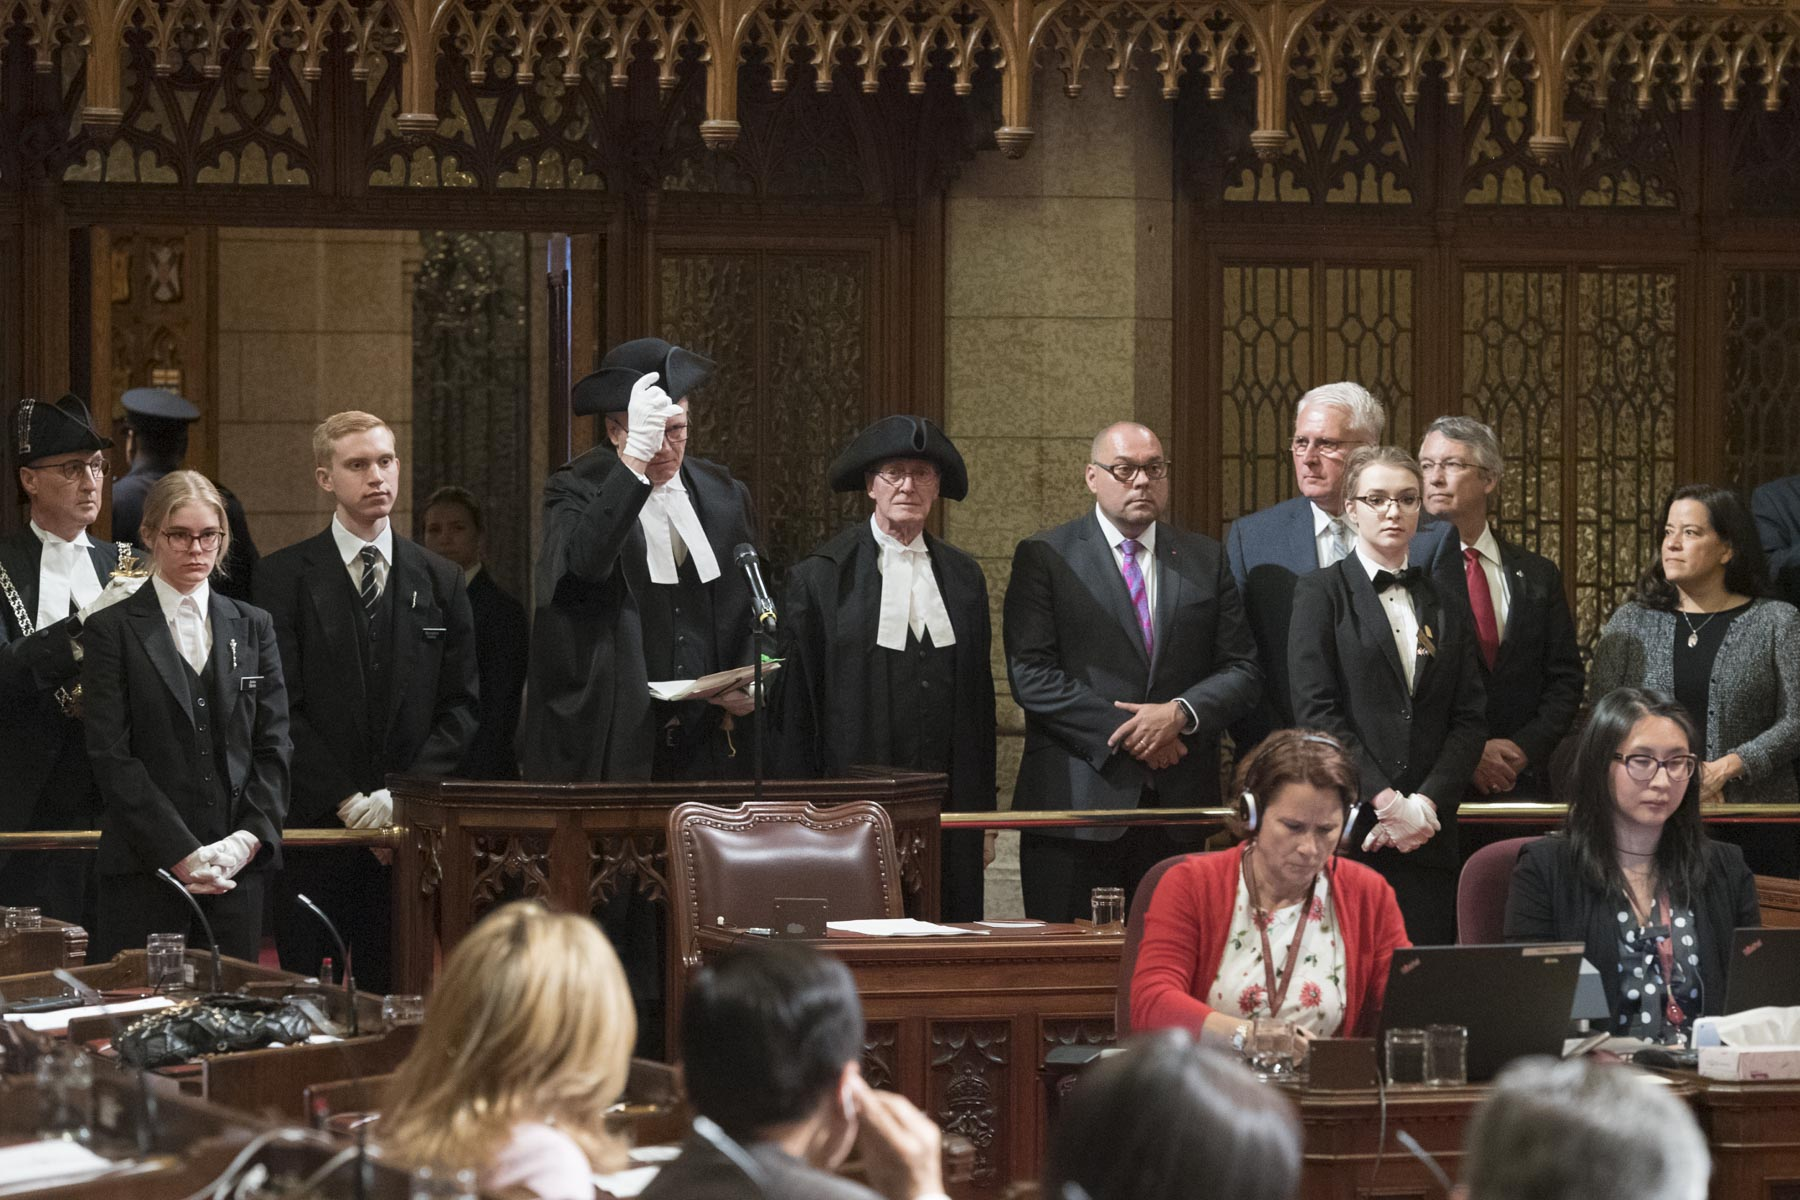 Members of Parliament attended the ceremony.